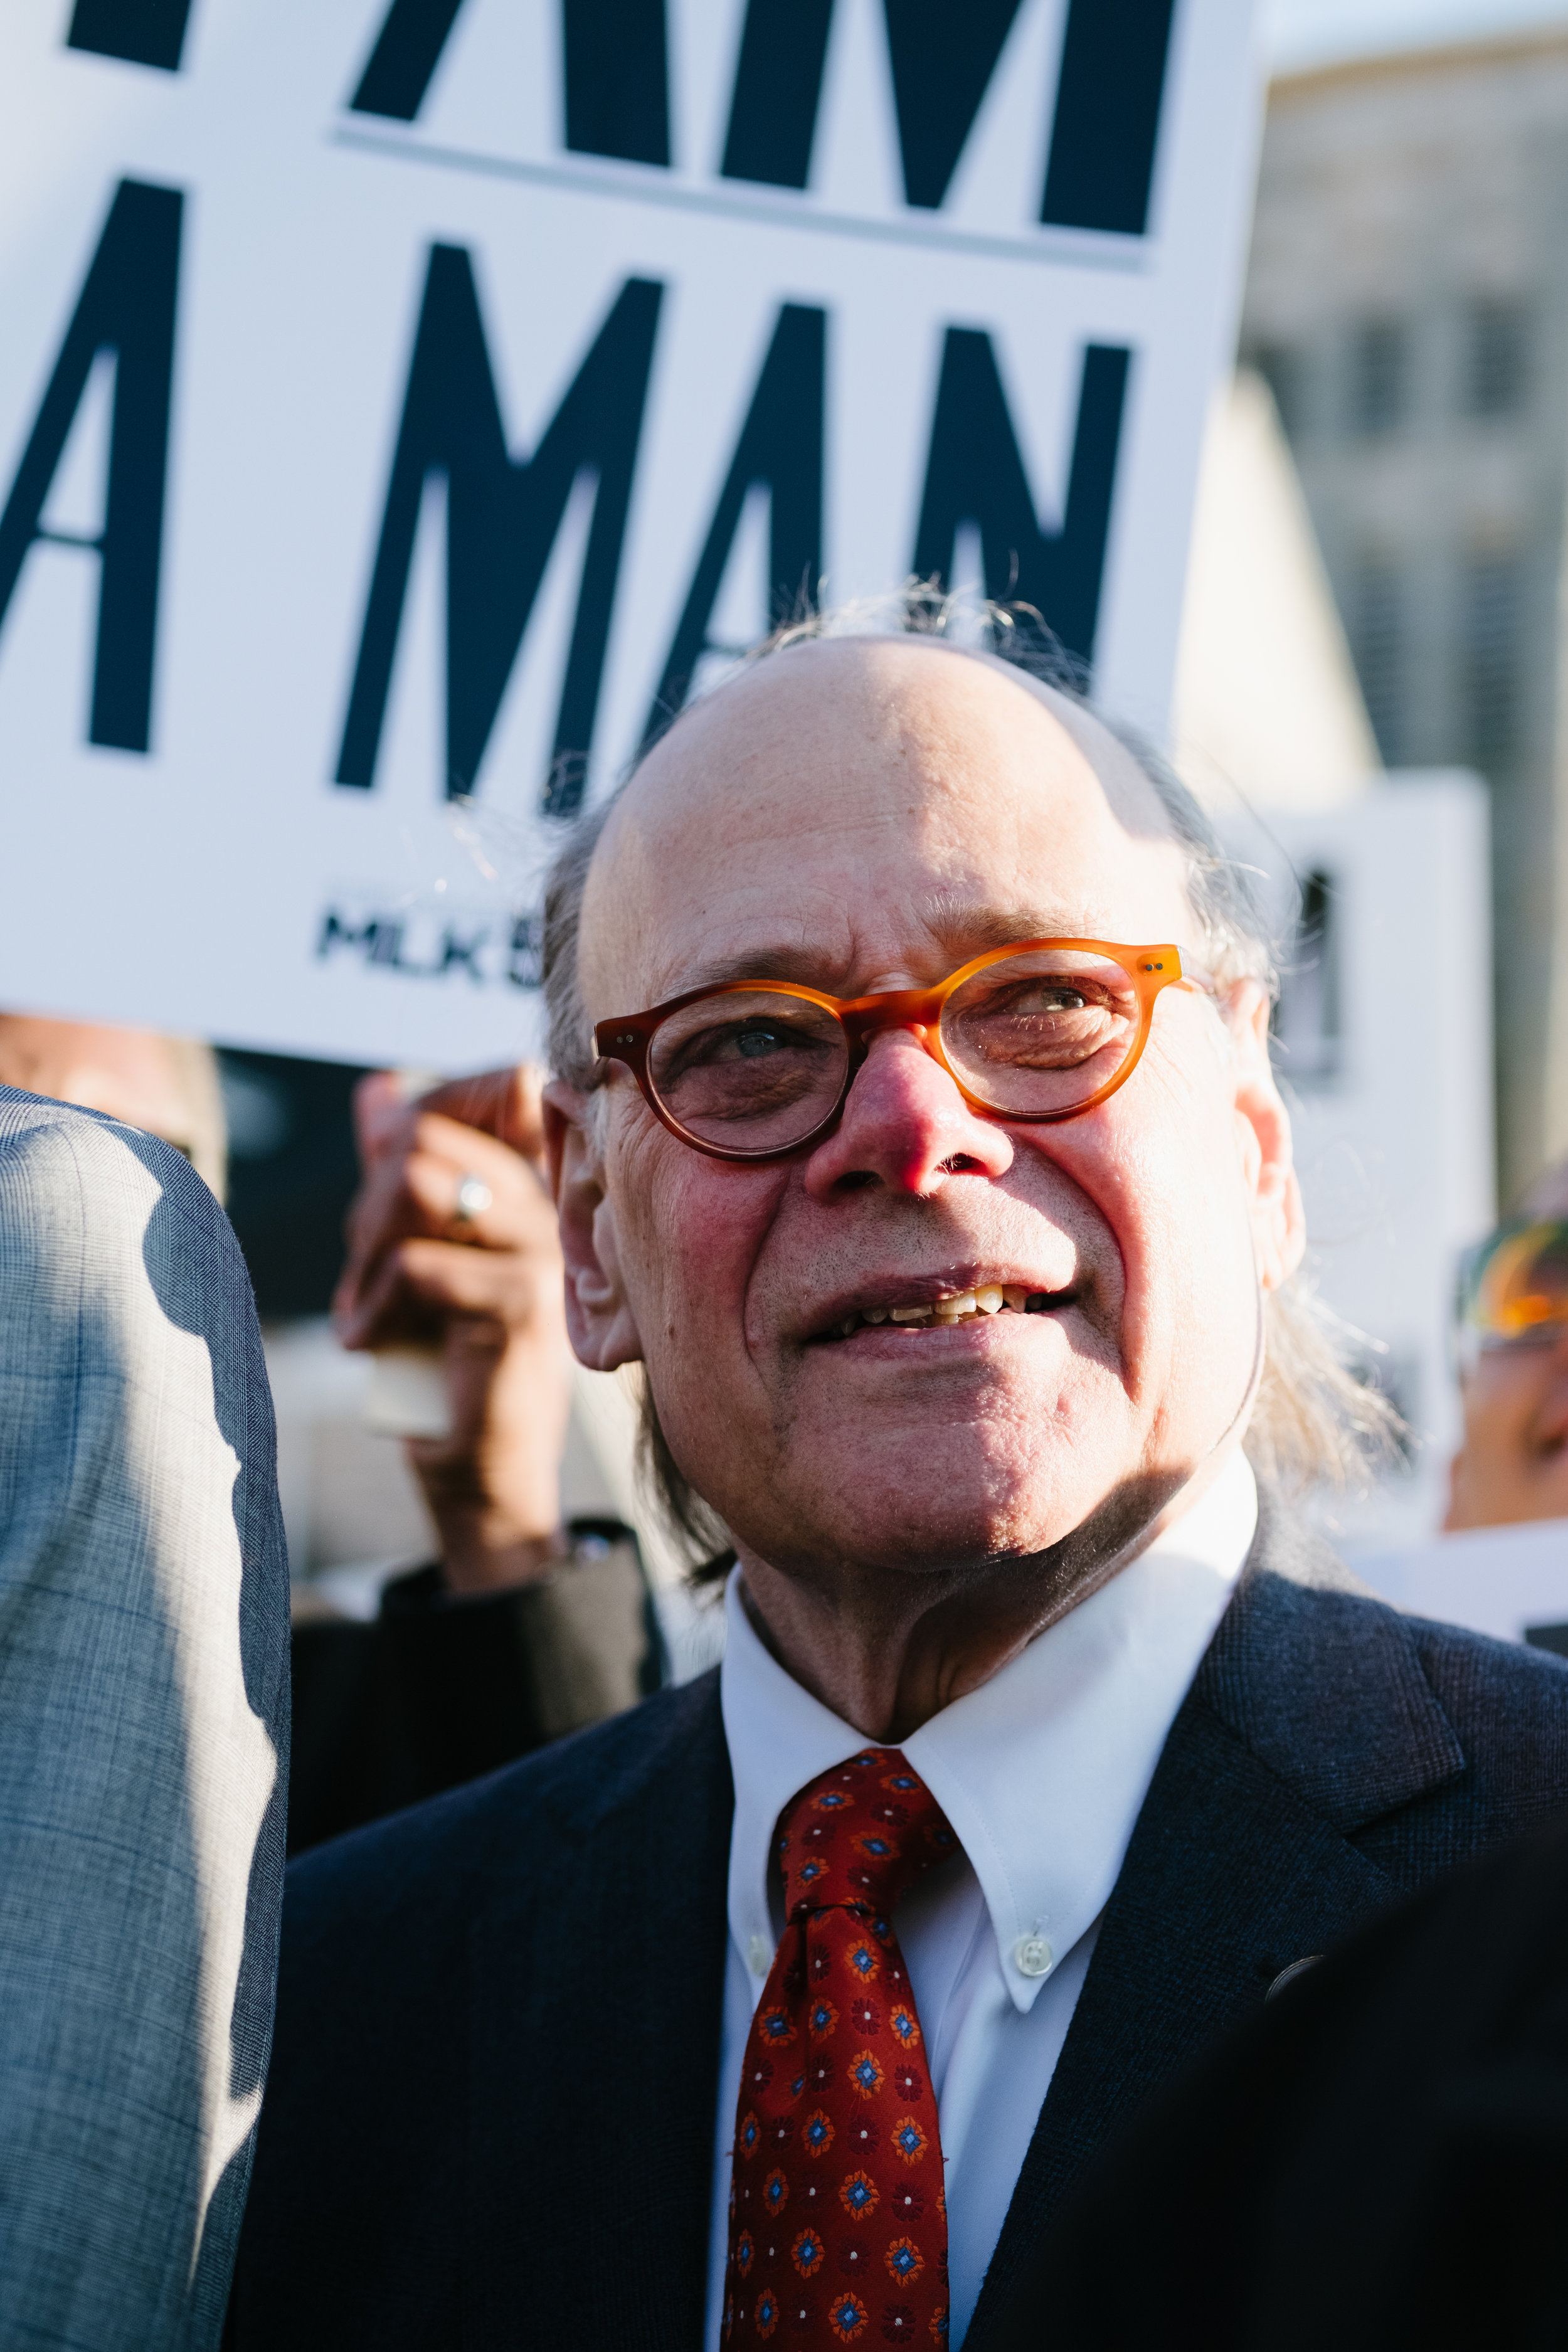 Rep. Steve Cohen participates in a march commemorating the 50th anniversary of the 1968 Memphis Sanitation Strike, February 12, 2018.